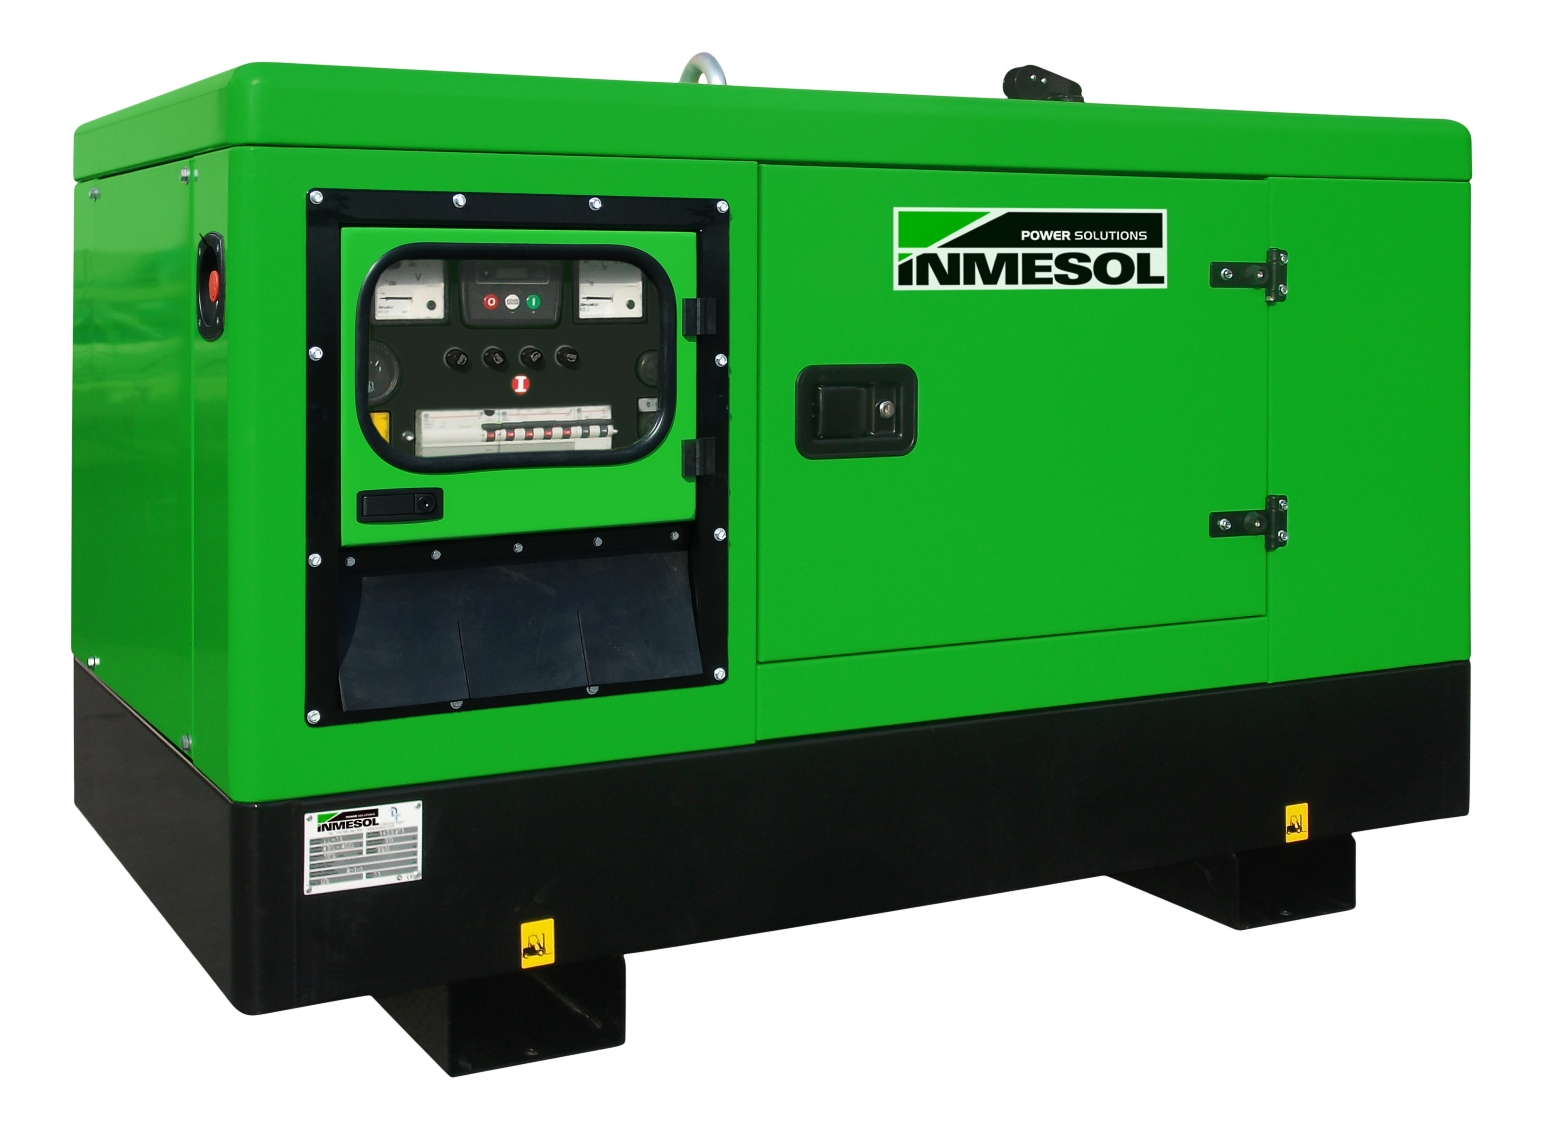 Generator with manual control panel.IK-015 - KOHLER - KDW1404(60HZ) - 1.800 R.P.M. | 60 Hz